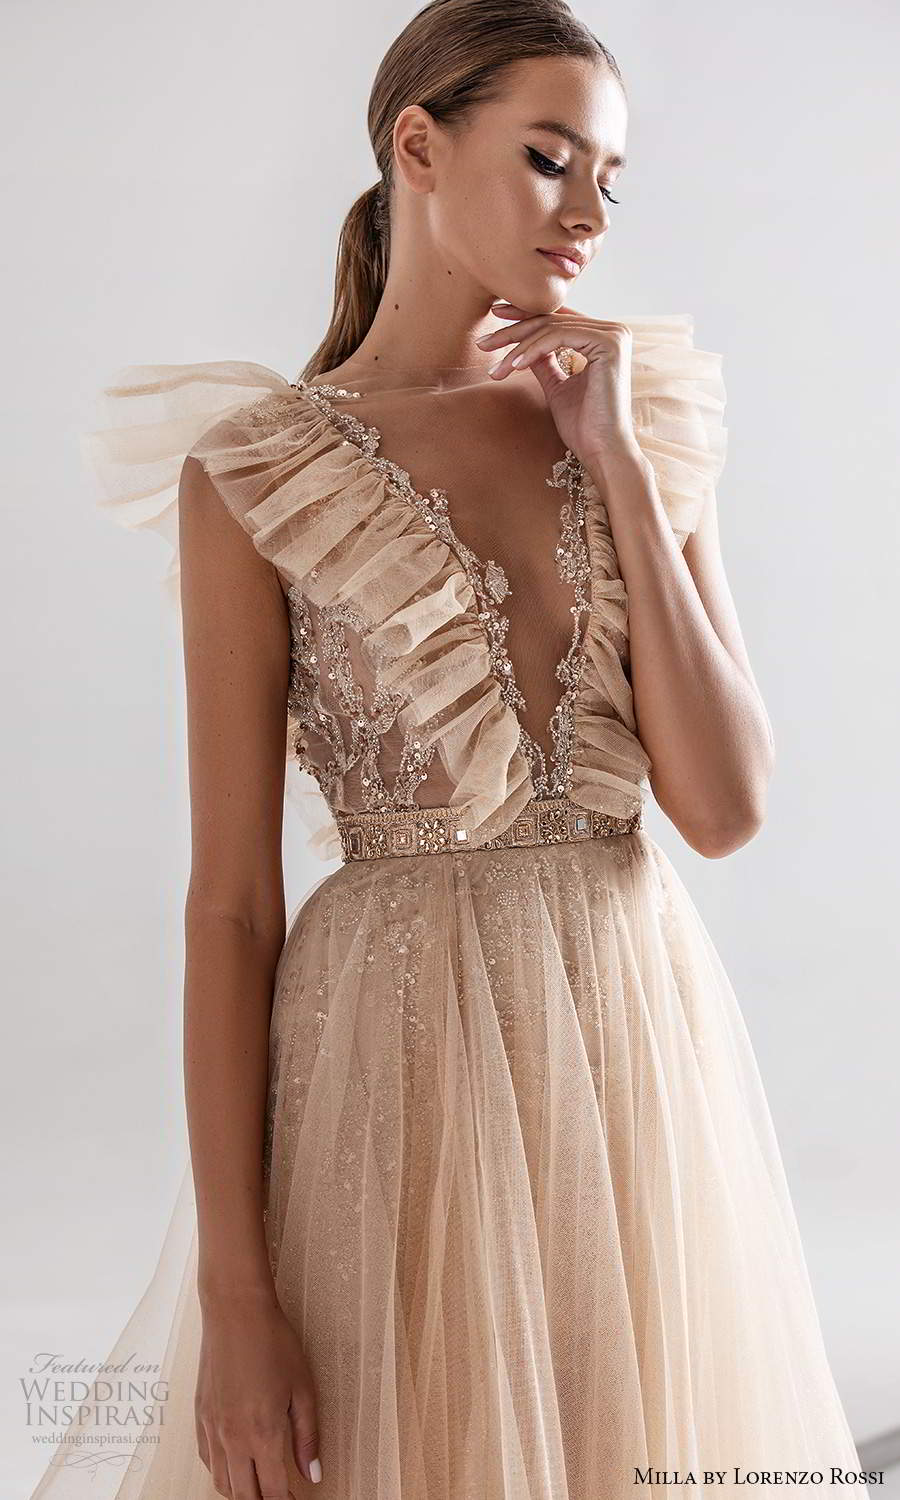 milla by lorenzo rossi 2020 rtw sleeveless ruffle straps plunging v neckline fully embellished a line ball gown wedding dress blush champagne (1) zv